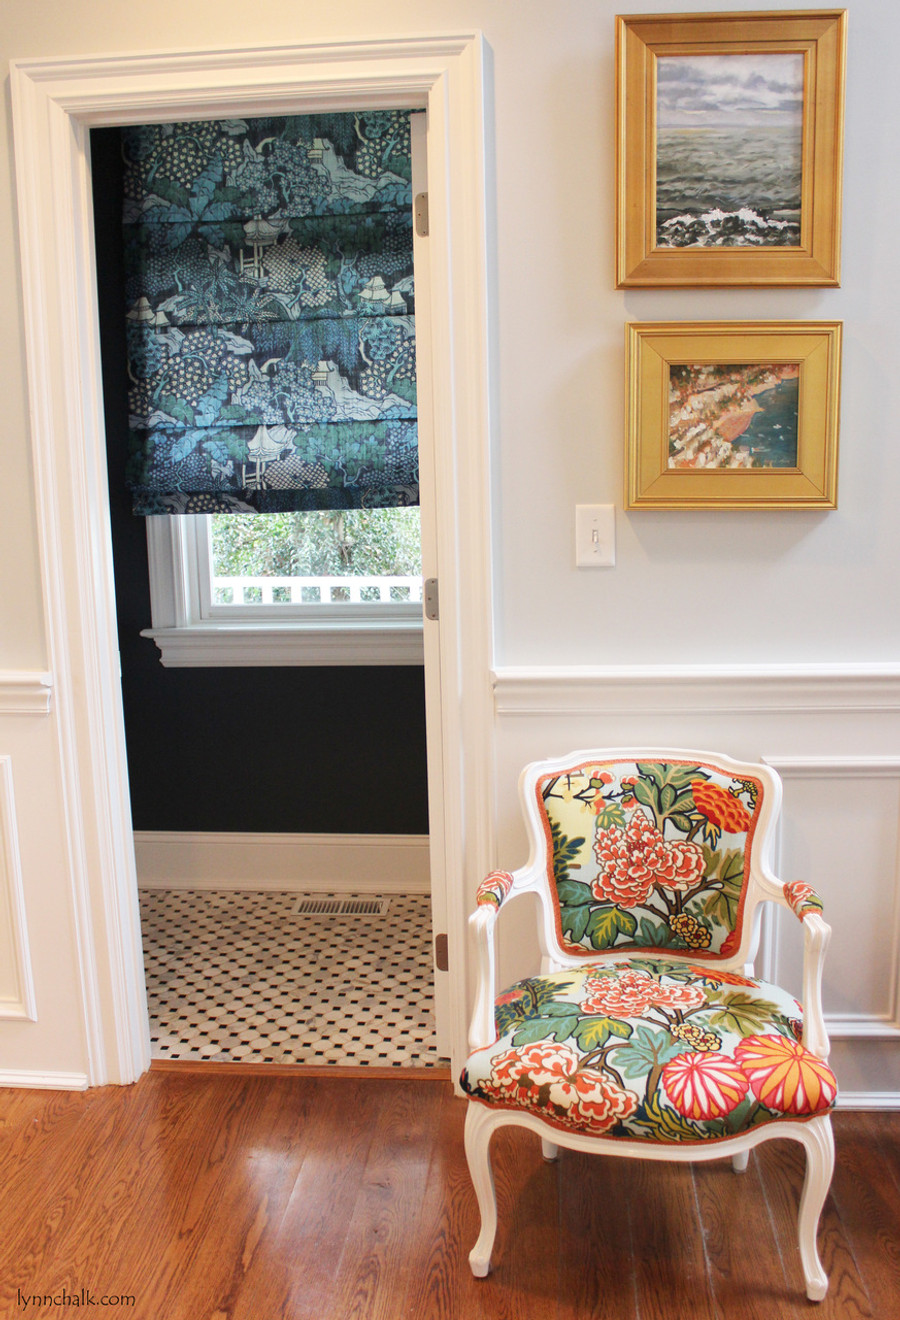 Roman Backslat Shade in Kelly Wearstler Edo Linen Teal.  Chair in Chiang Mai Dragon Aquamarine.